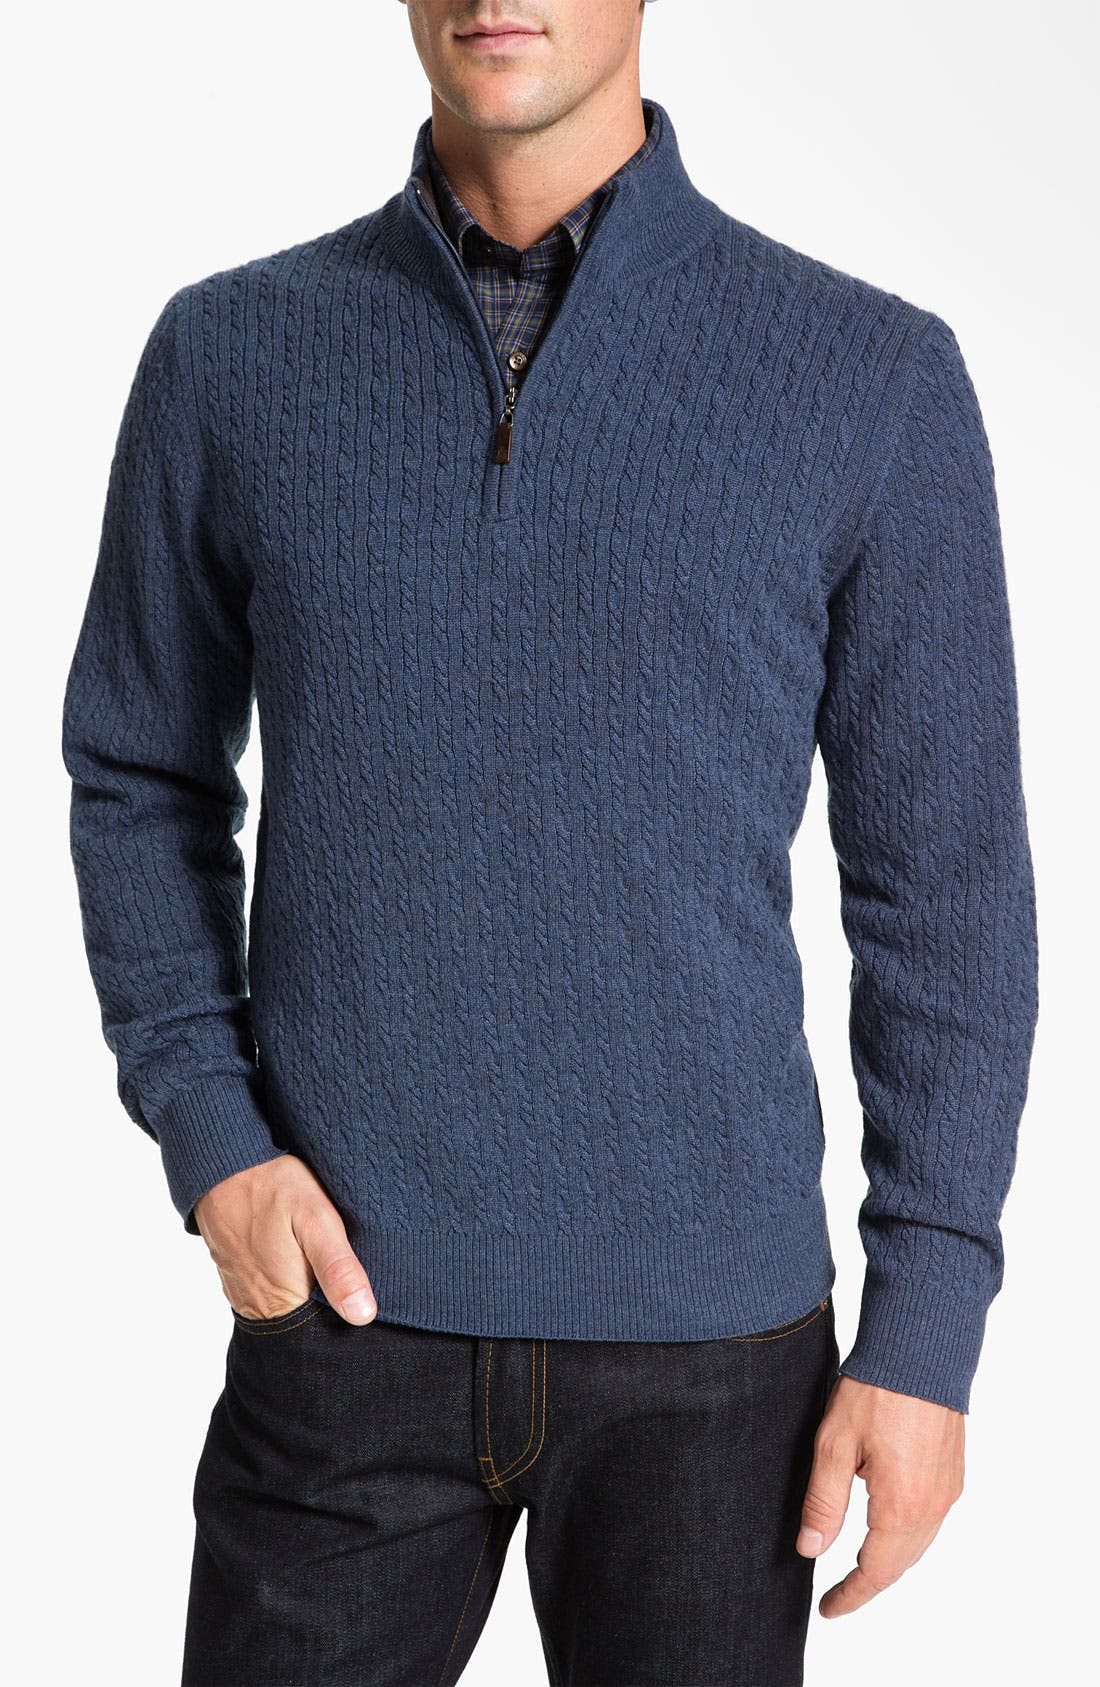 Alternate Image 1 Selected - Robert Talbott Cable Knit Merino Wool Sweater (Online Only)